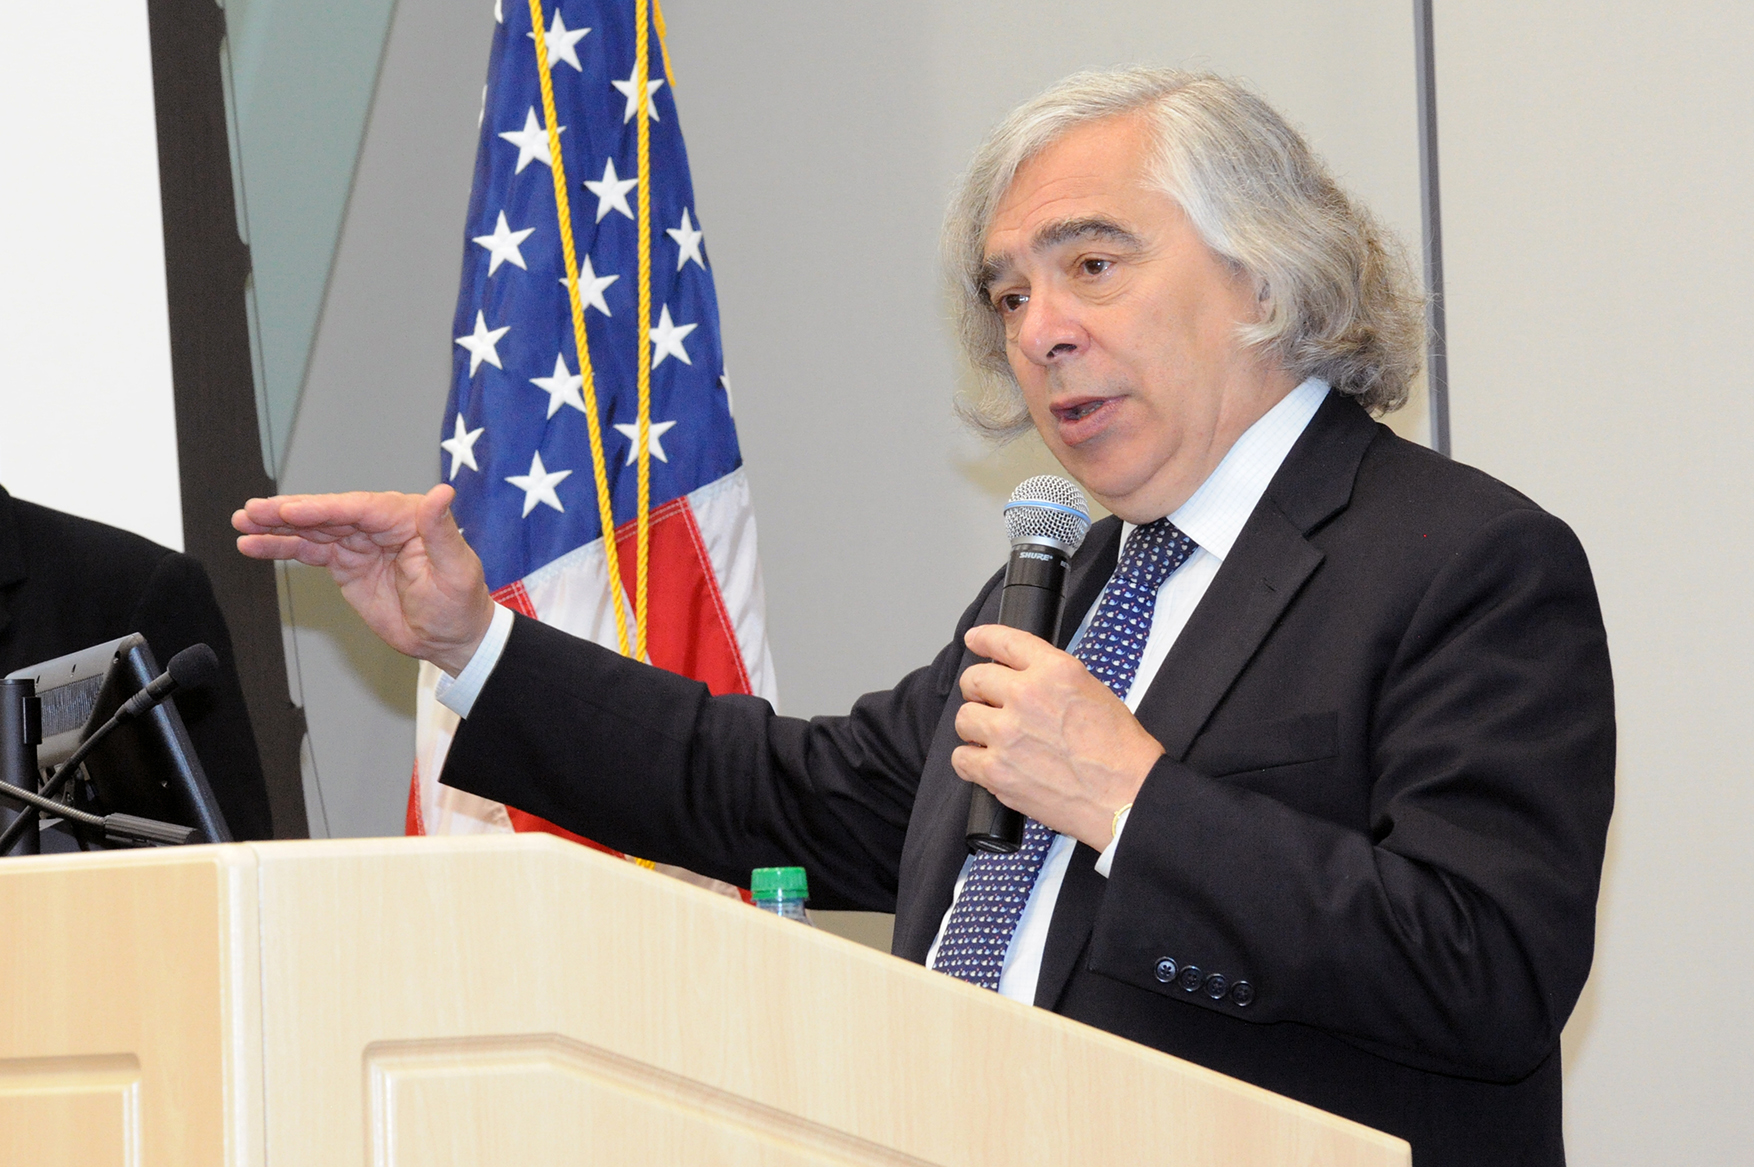 US Secretary of Energy Ernest Moniz discussed the gains made by the renewable-energy market in his exit memo. Image: Idaho National Laboratory / Flickr